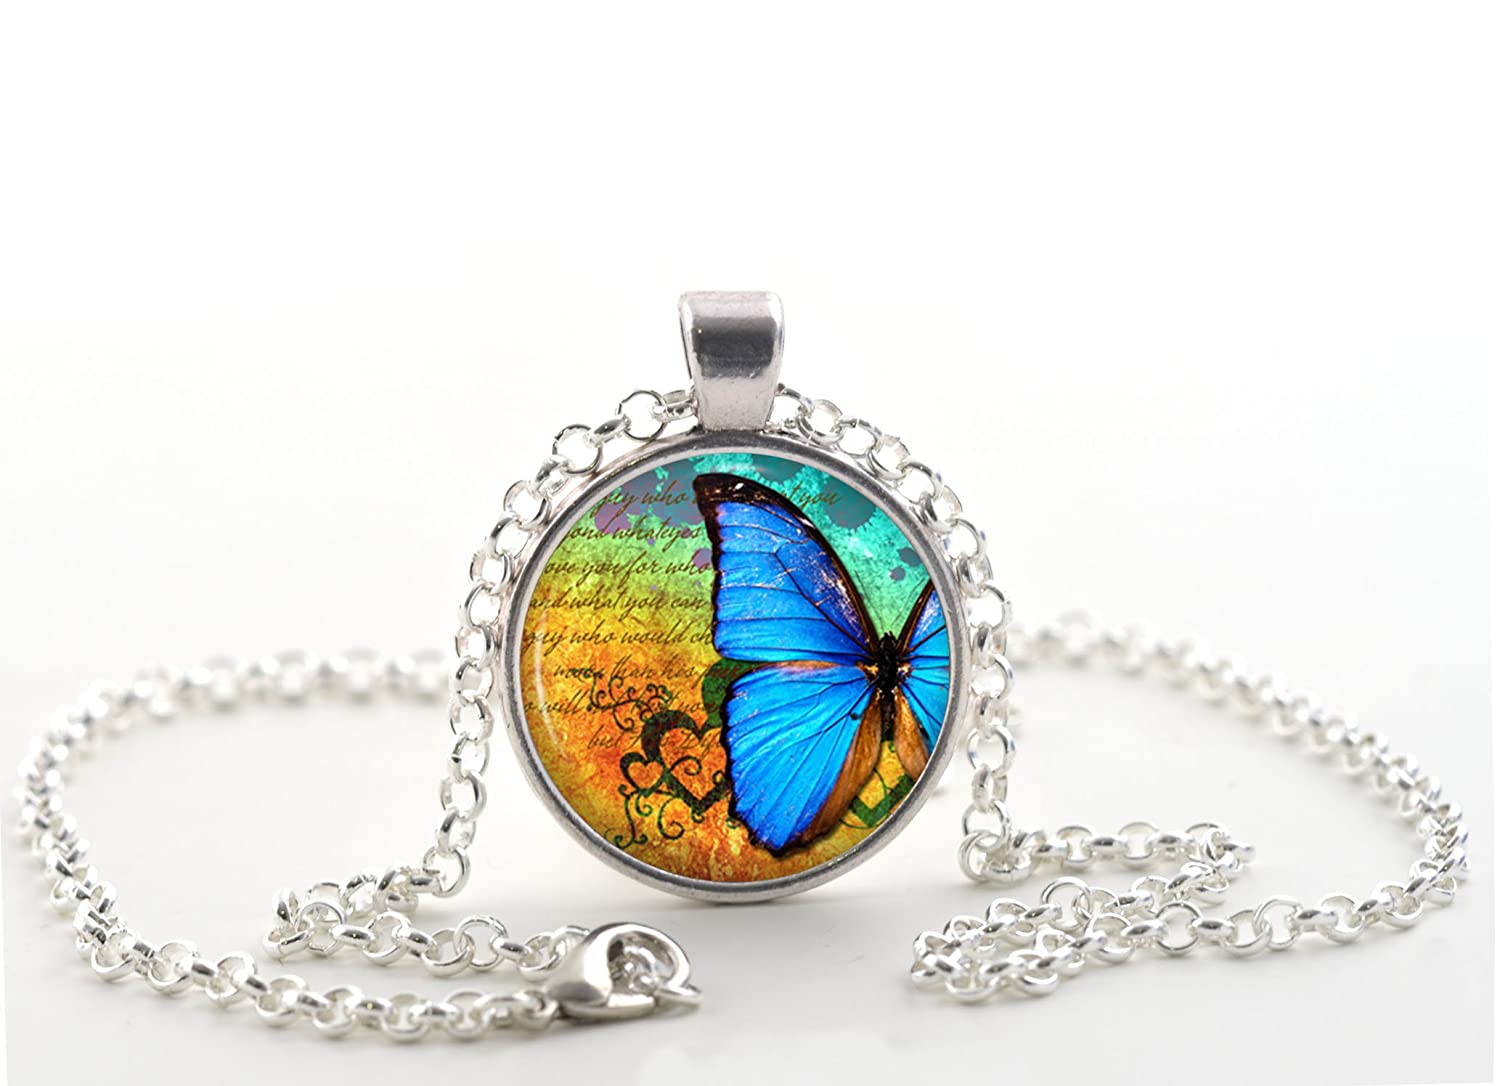 Silver Pendant Crystal Clear Glass Dome Blue Butterfly Necklace Ladies Jewelry with Script